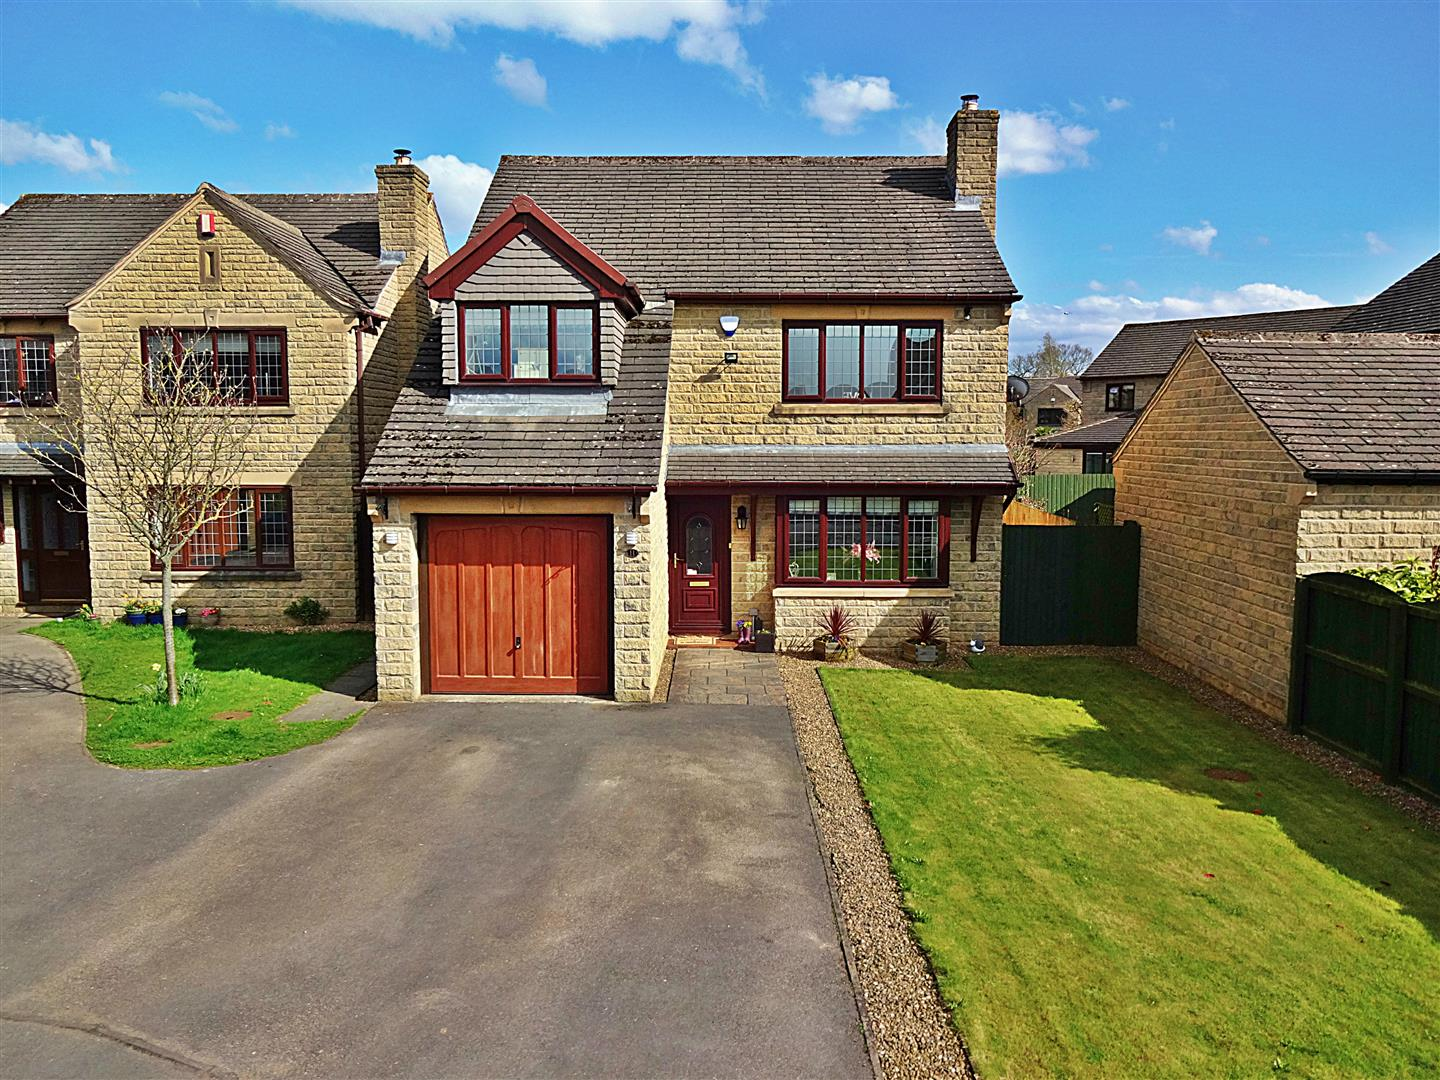 Greenholme Close, Burley In Wharfedale, LS29 7RN